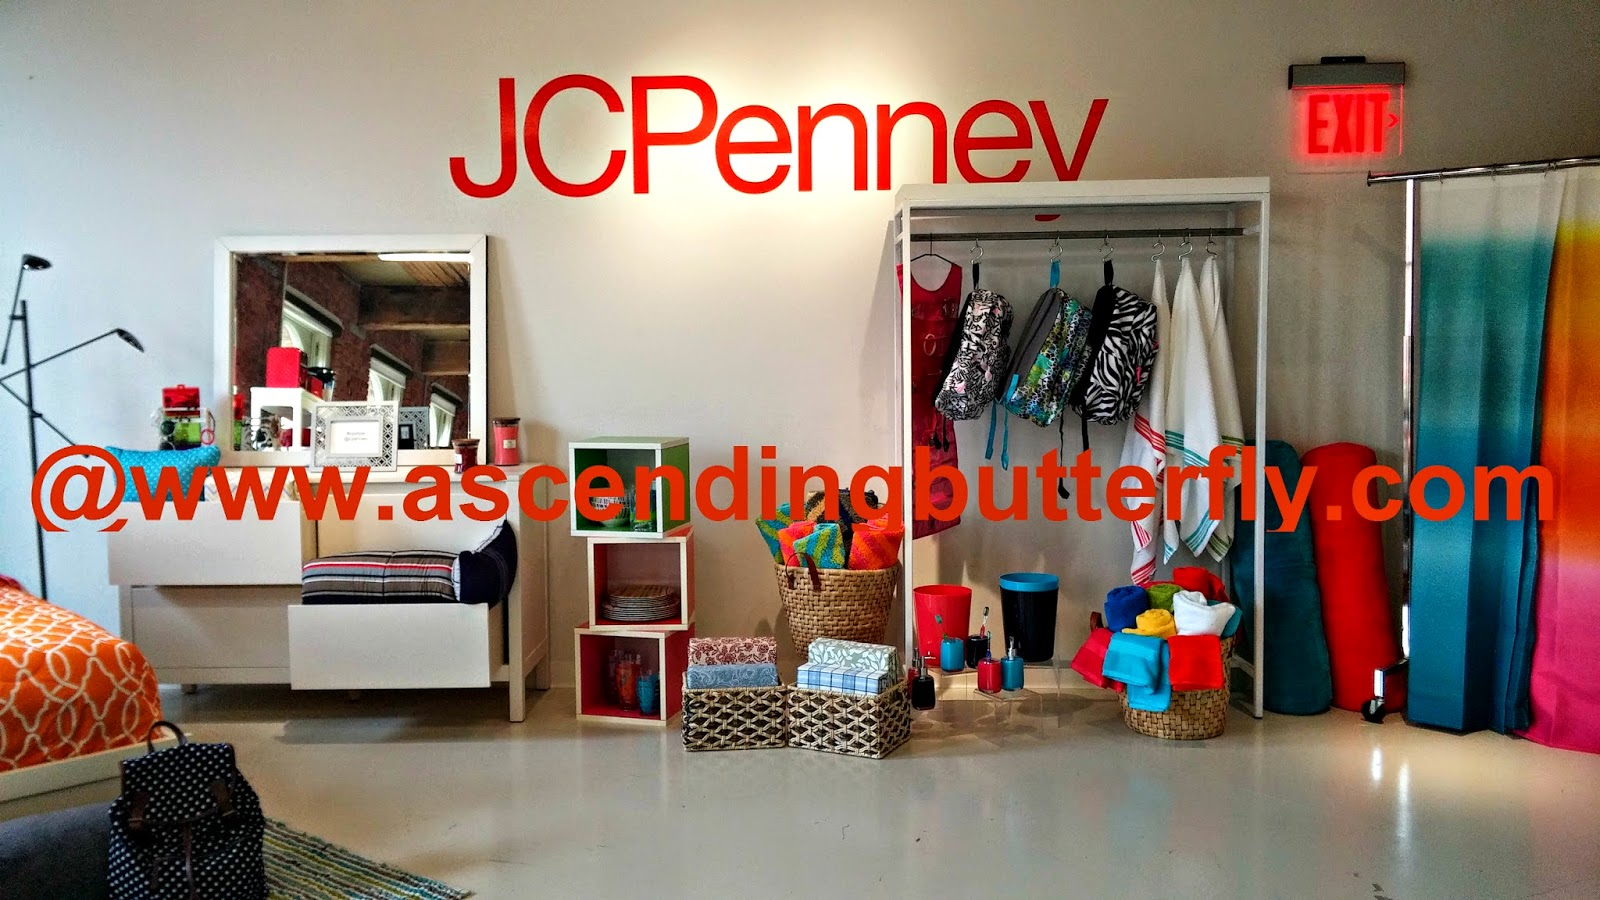 @jcpenney #BTS #jcpstyle Dorm Room Style